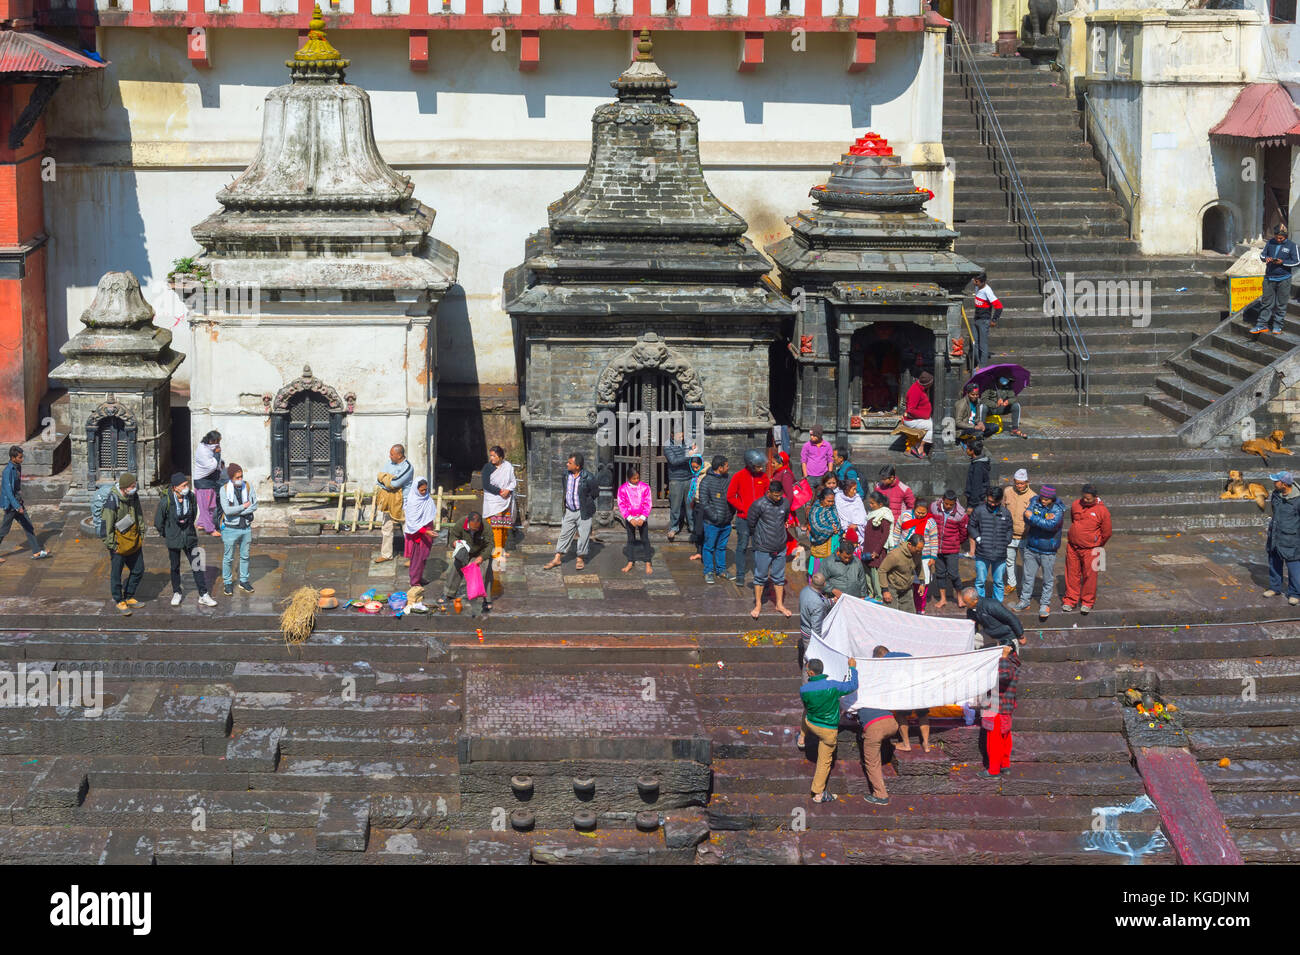 Cremation ghat along the Bagmati river, Pashupatinath Temple complex, Unesco World Heritage Site, Kathmandu, Nepal - Stock Image